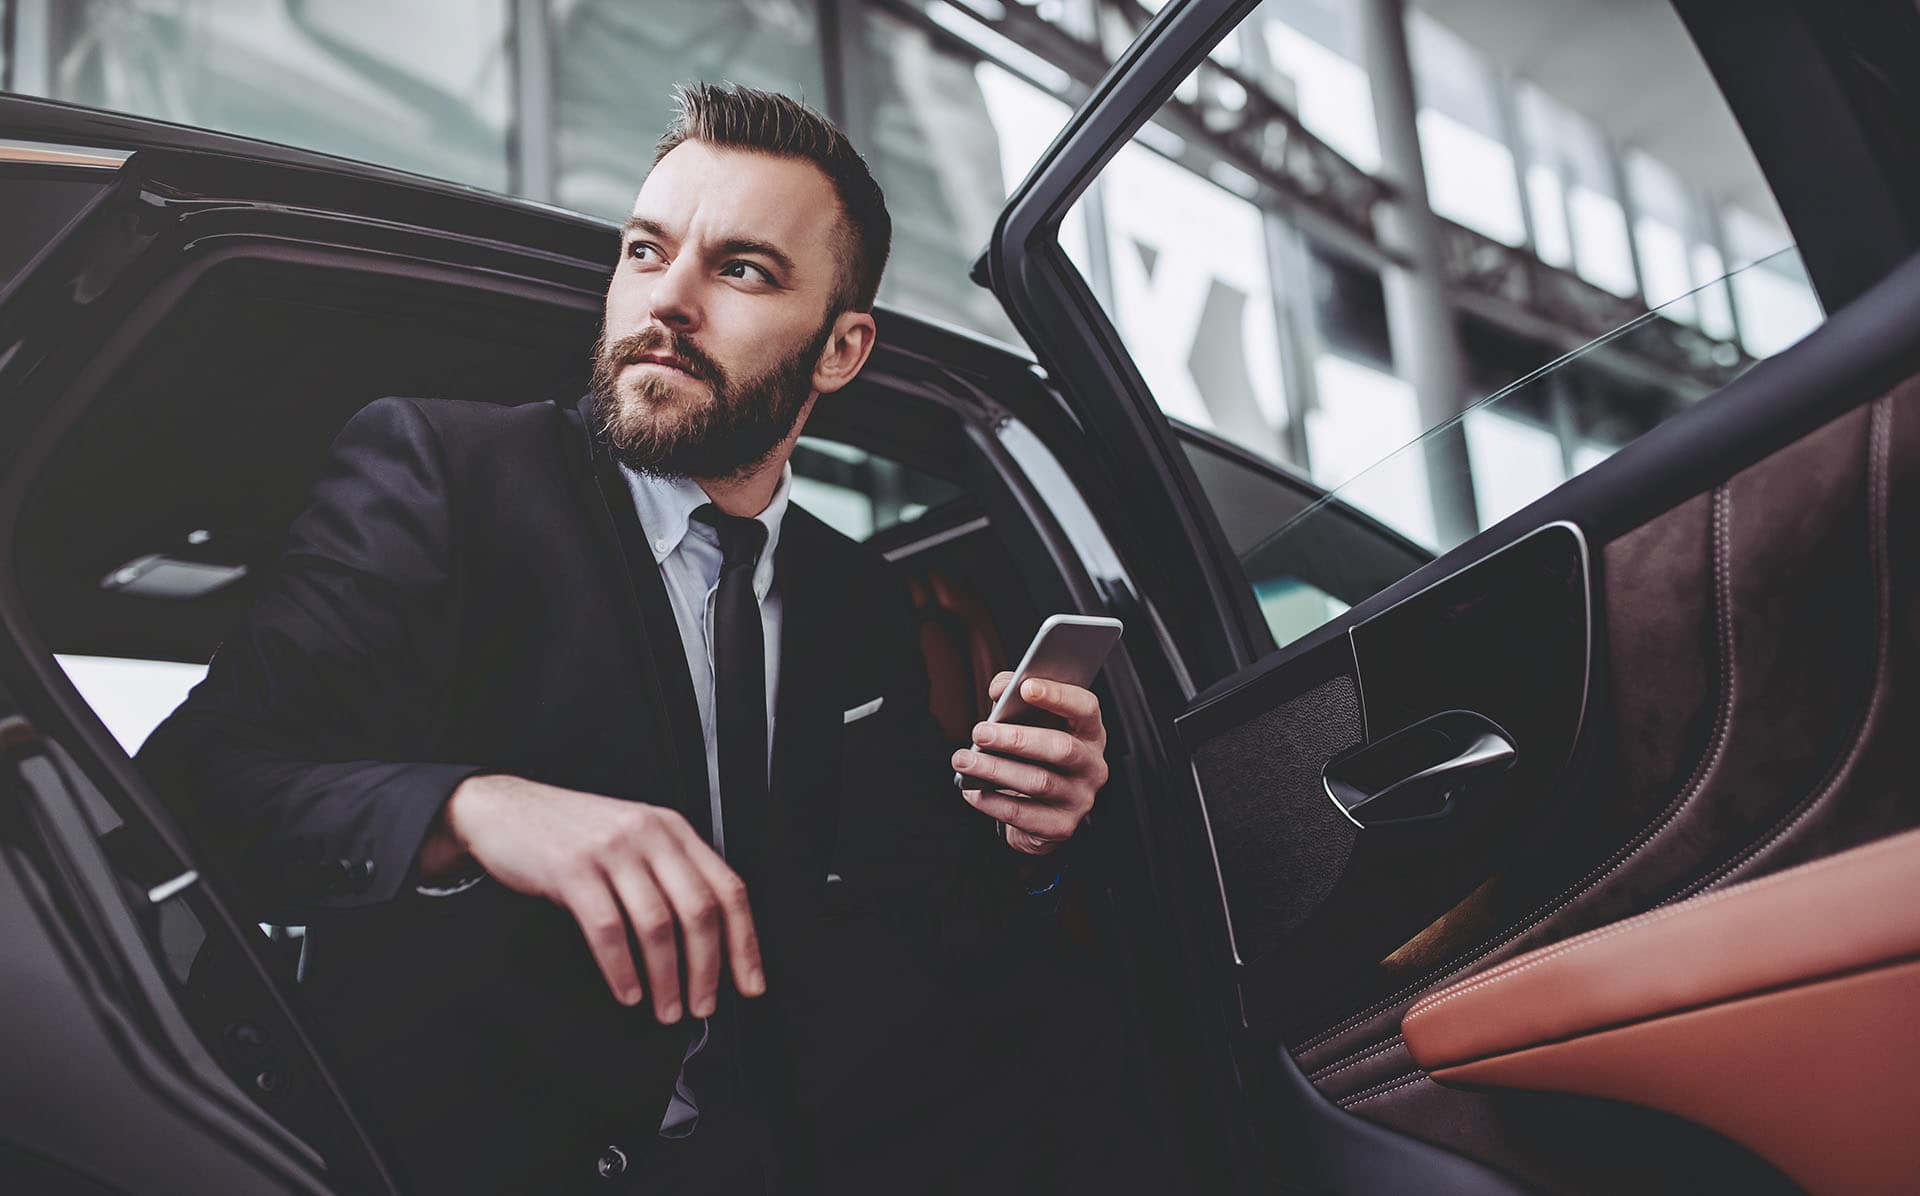 Young handsome businessman is sitting in luxury car. Serious bearded man in suit with smart phone in hands.